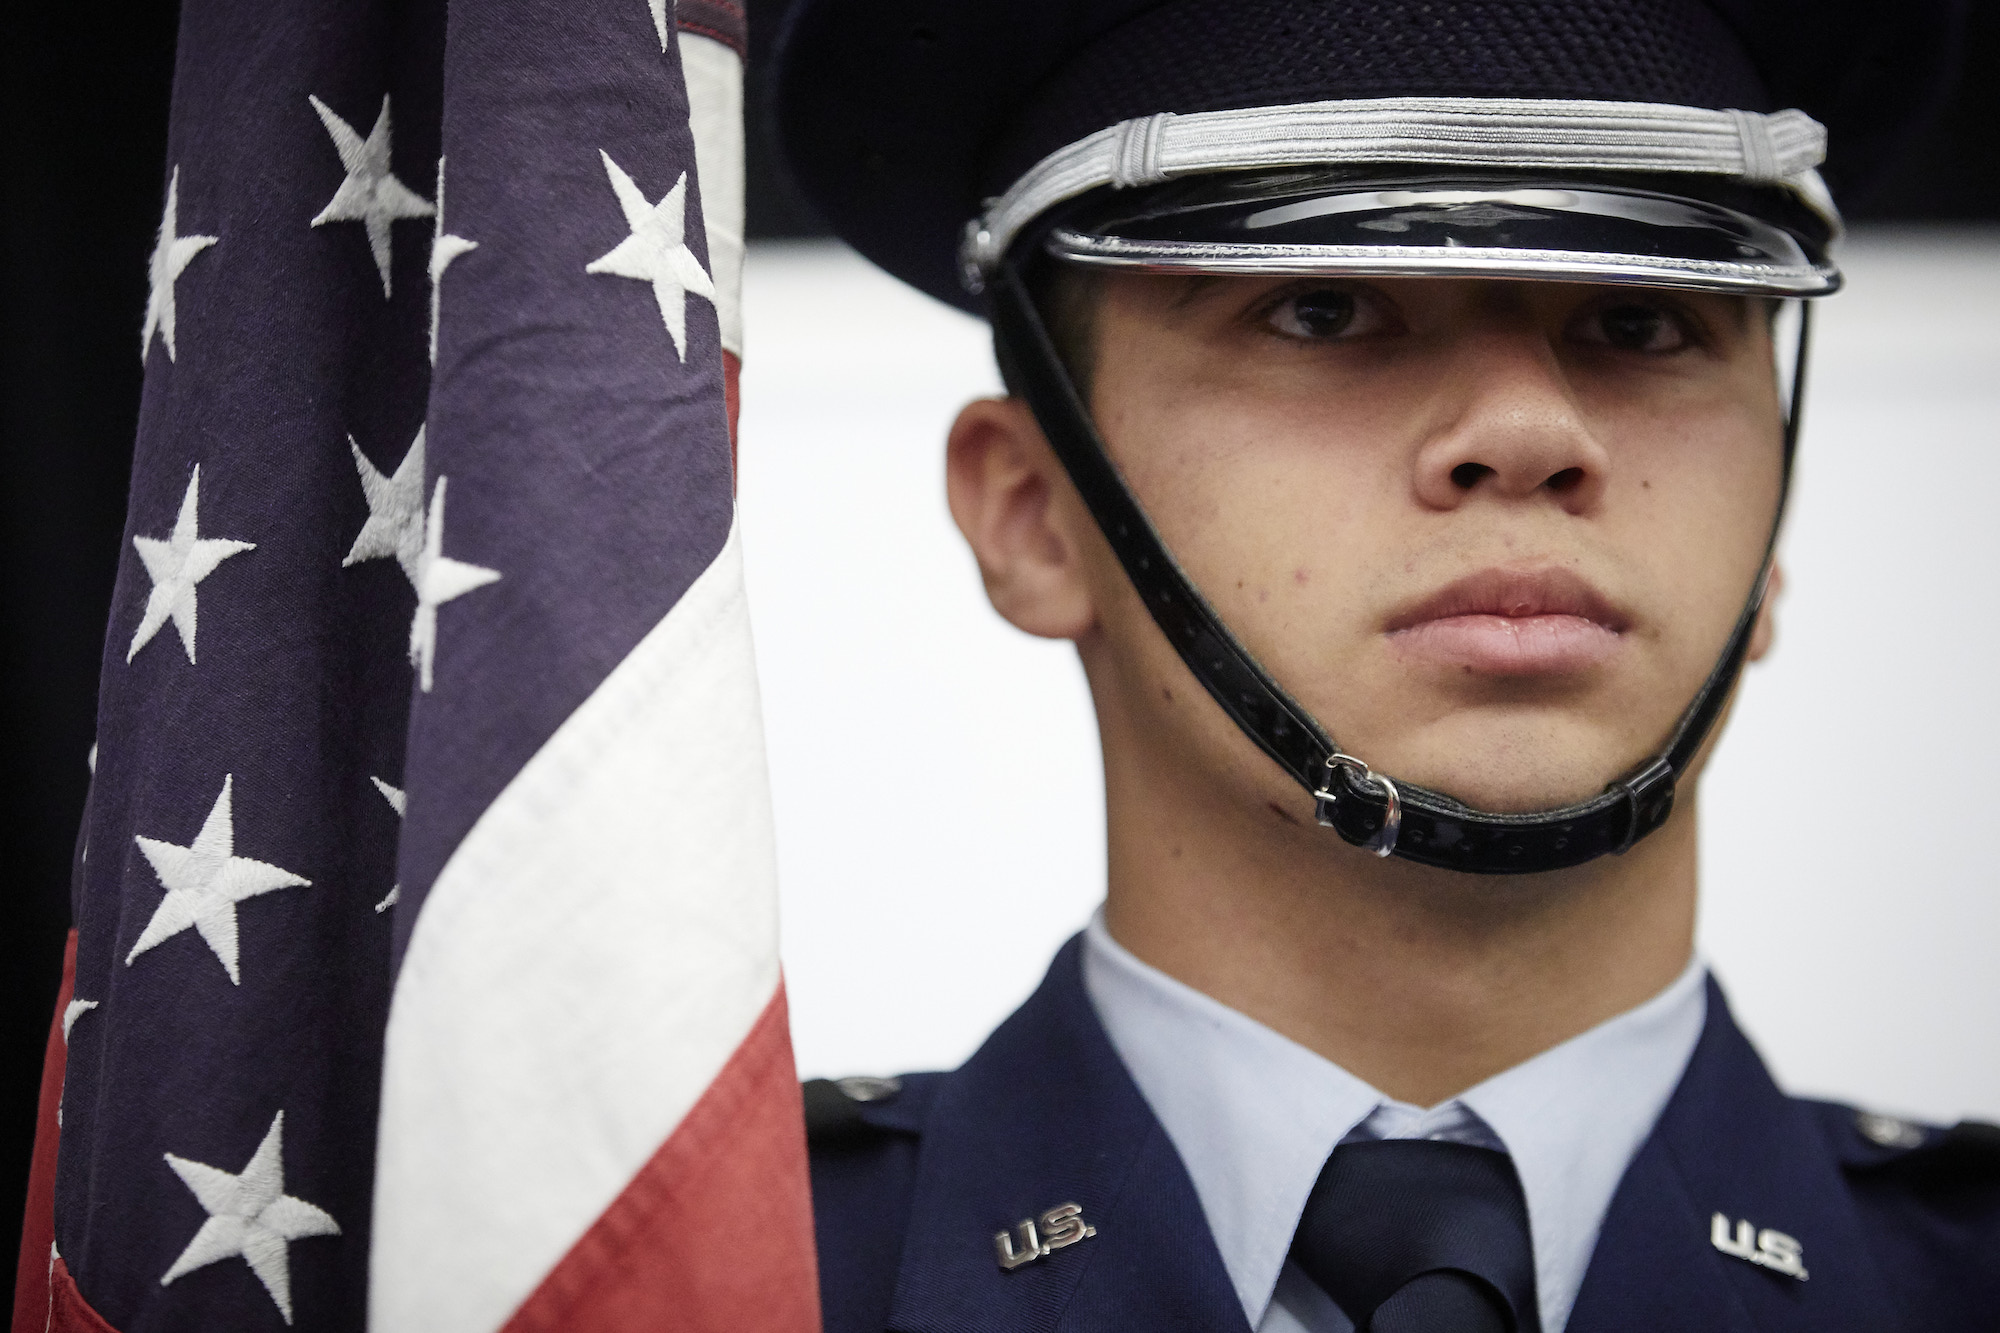 UNLV's Air Force ROTC Program Marks 15 Years on Campus - UNLV NewsCenter